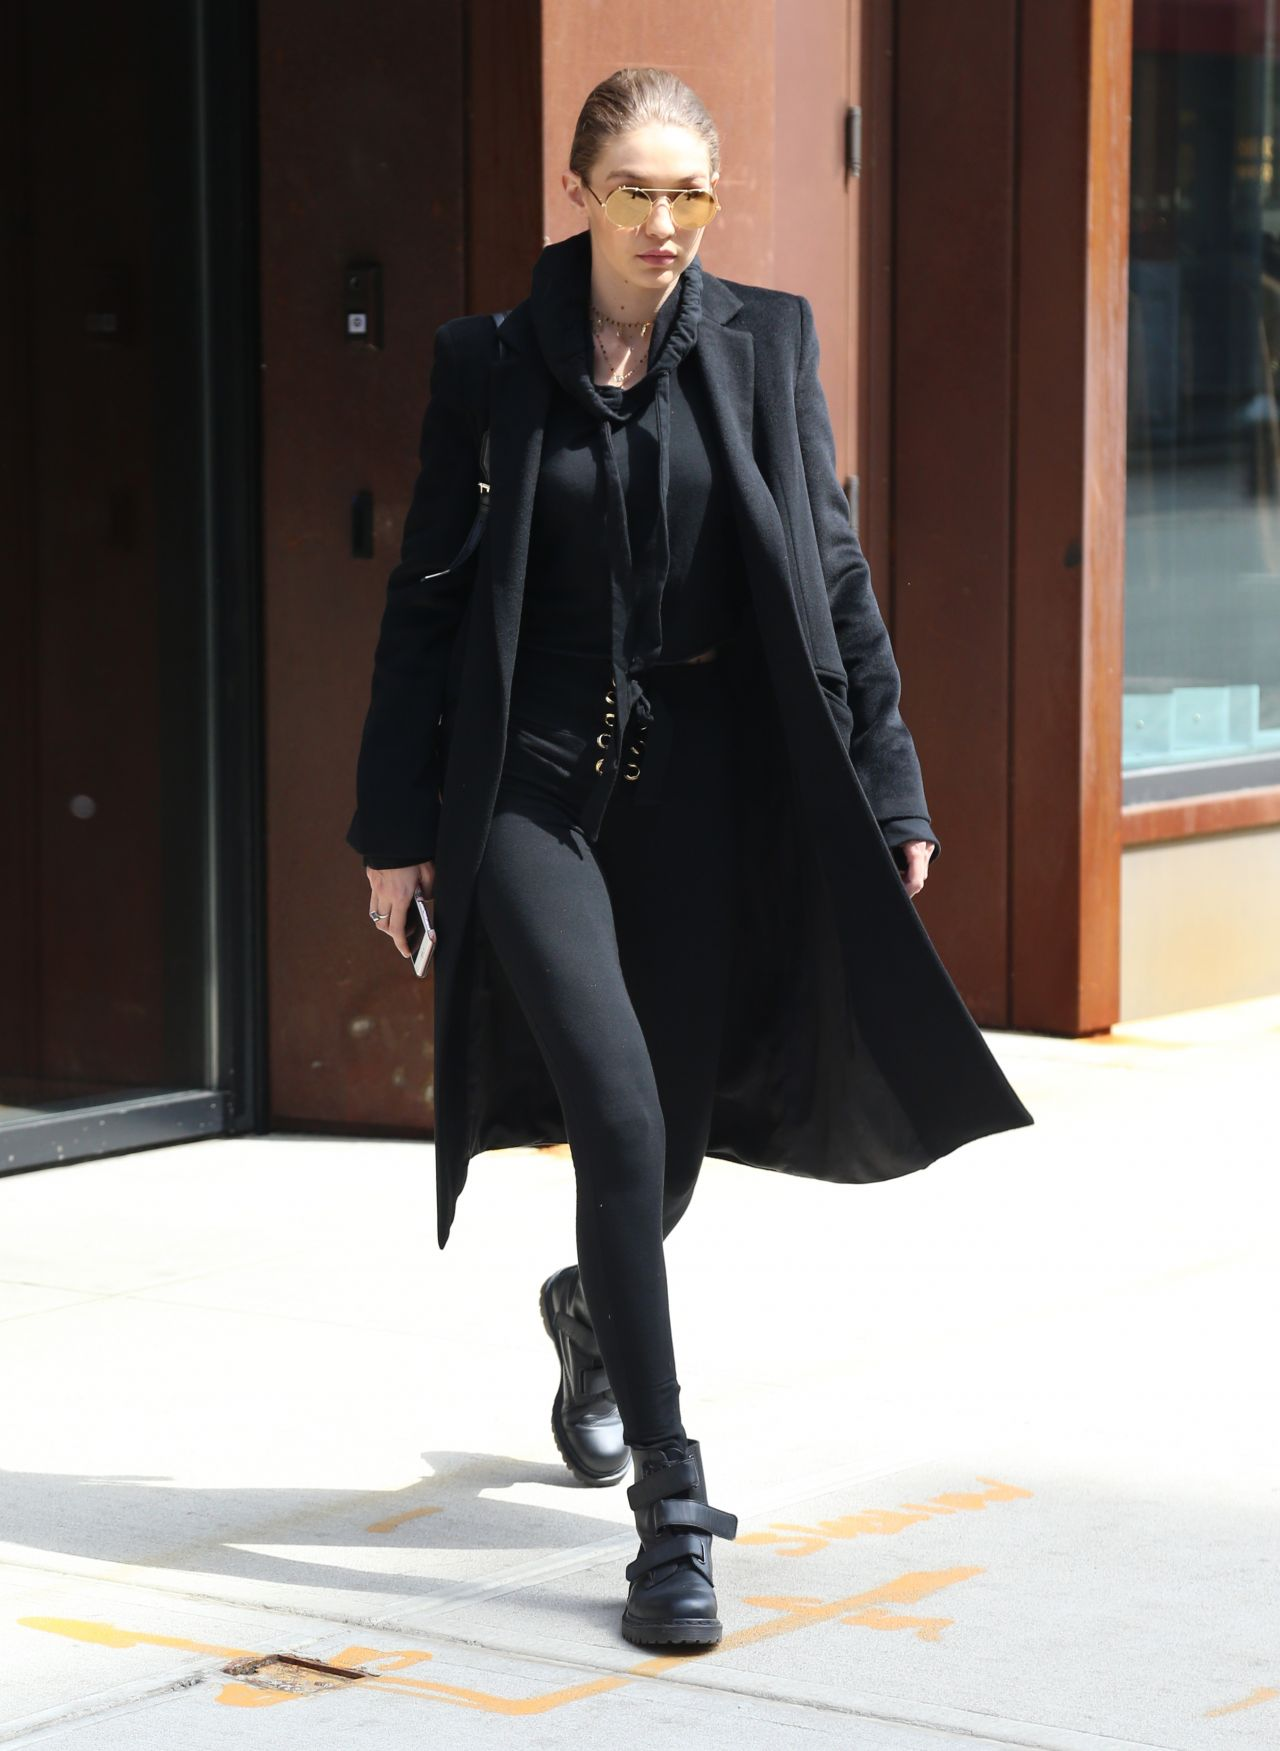 Gigi hadid in all black ensemble out in new york nude (71 photo), Paparazzi Celebrites photo